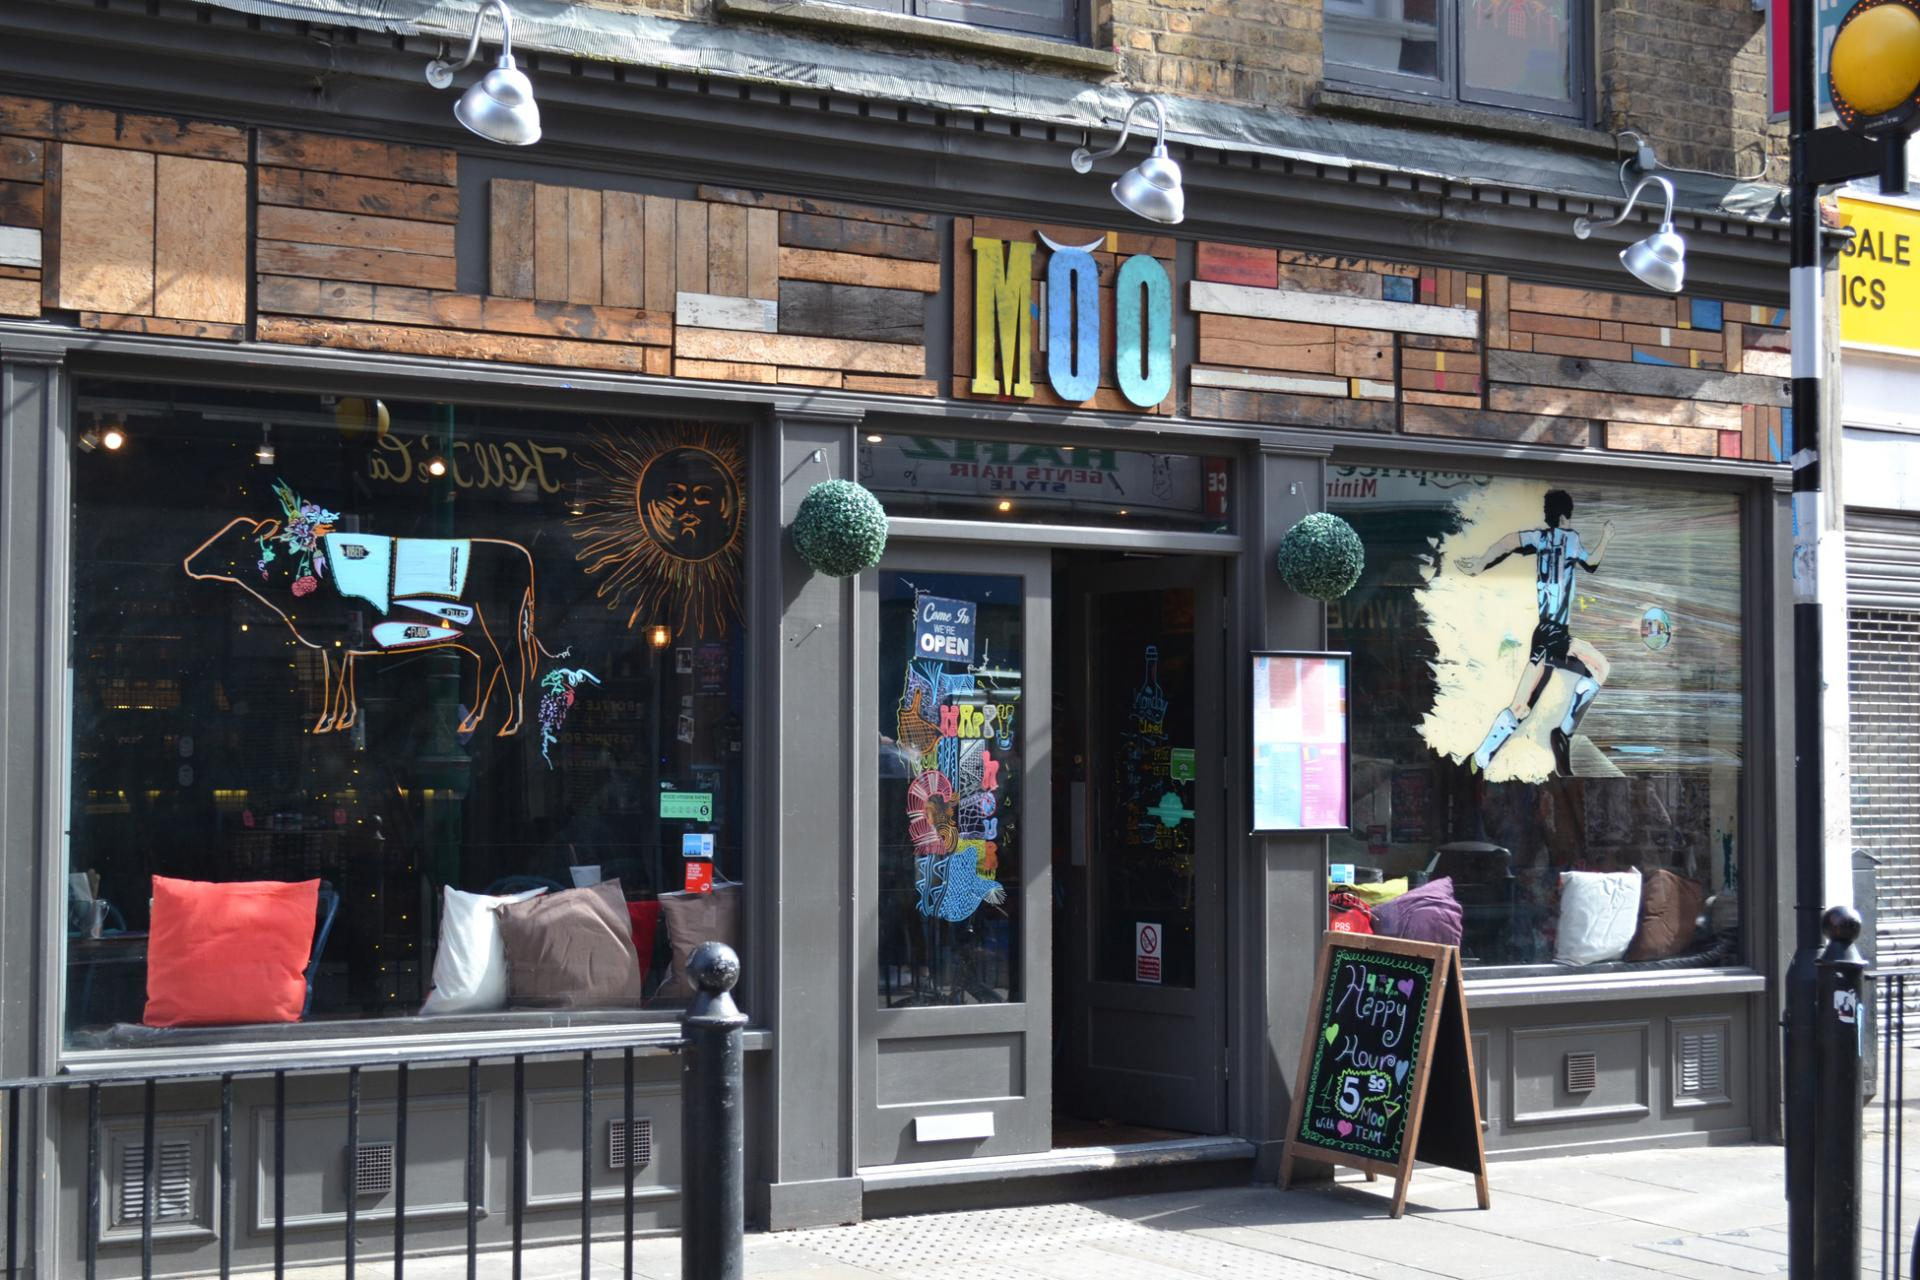 moo-restaurant-london-170704133504003